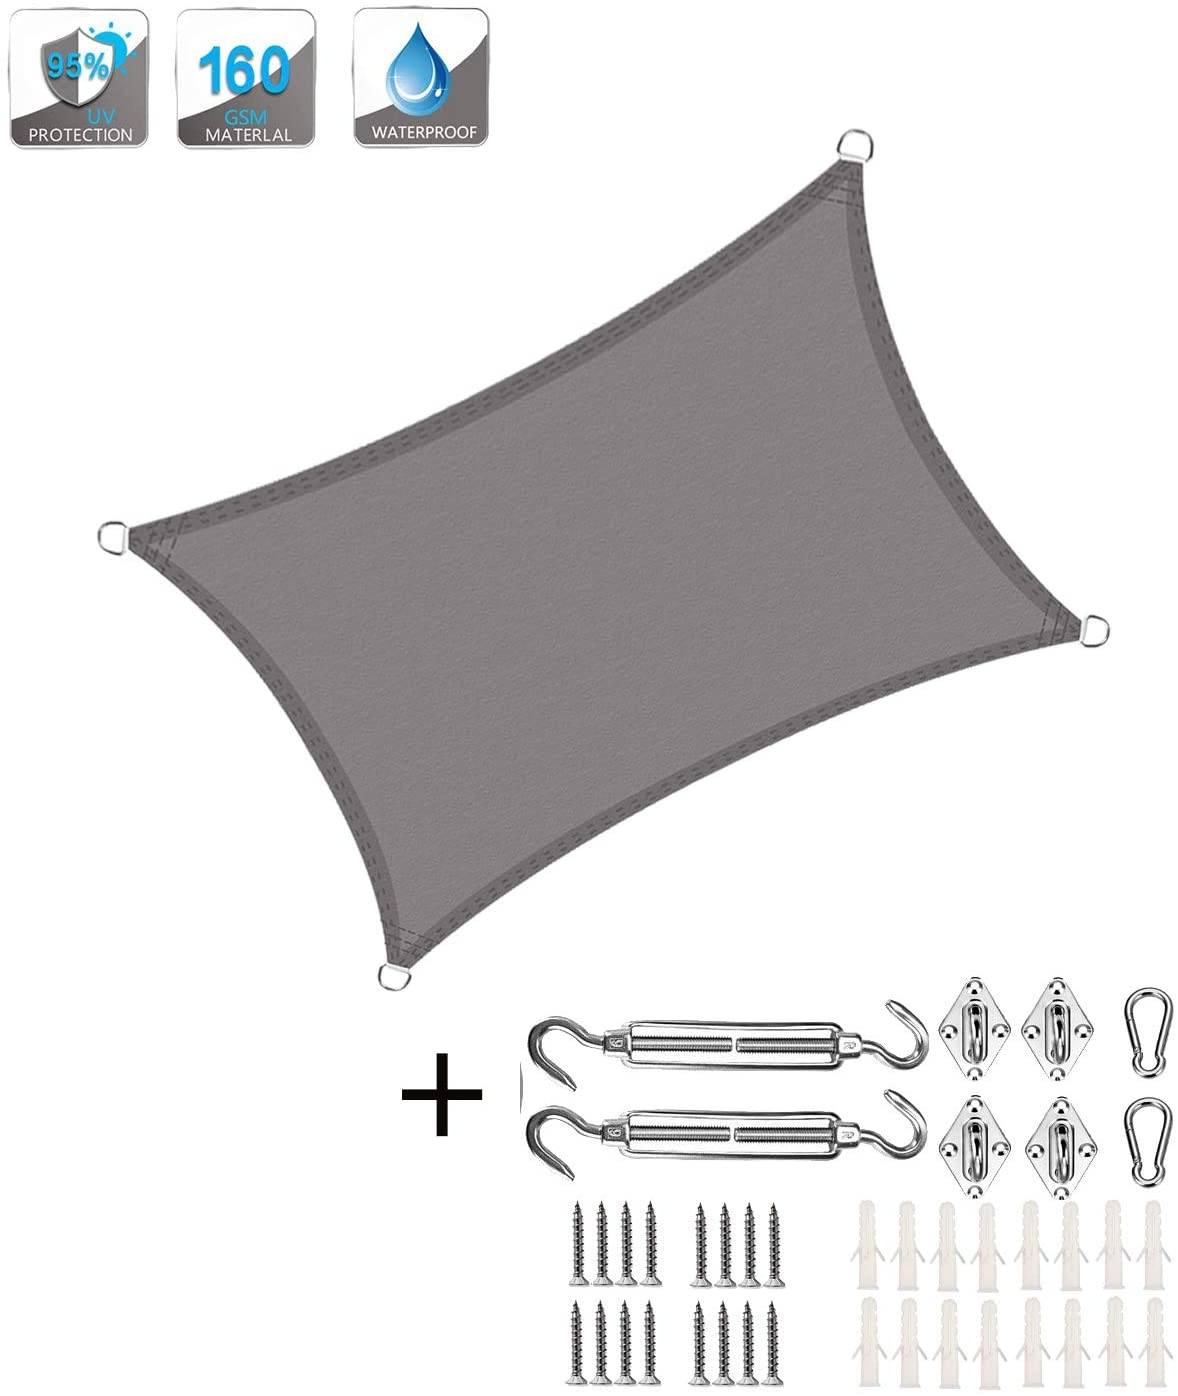 XXJF Sun Shade 95 uv Blockage Water air Permeable,Durable Ropes Included Sail Canopy Awning Durable Shade Fabric  PES Polyester for Outdoor Patio Garden  Backyard (Color : Gray, Size : 5x5.5m)